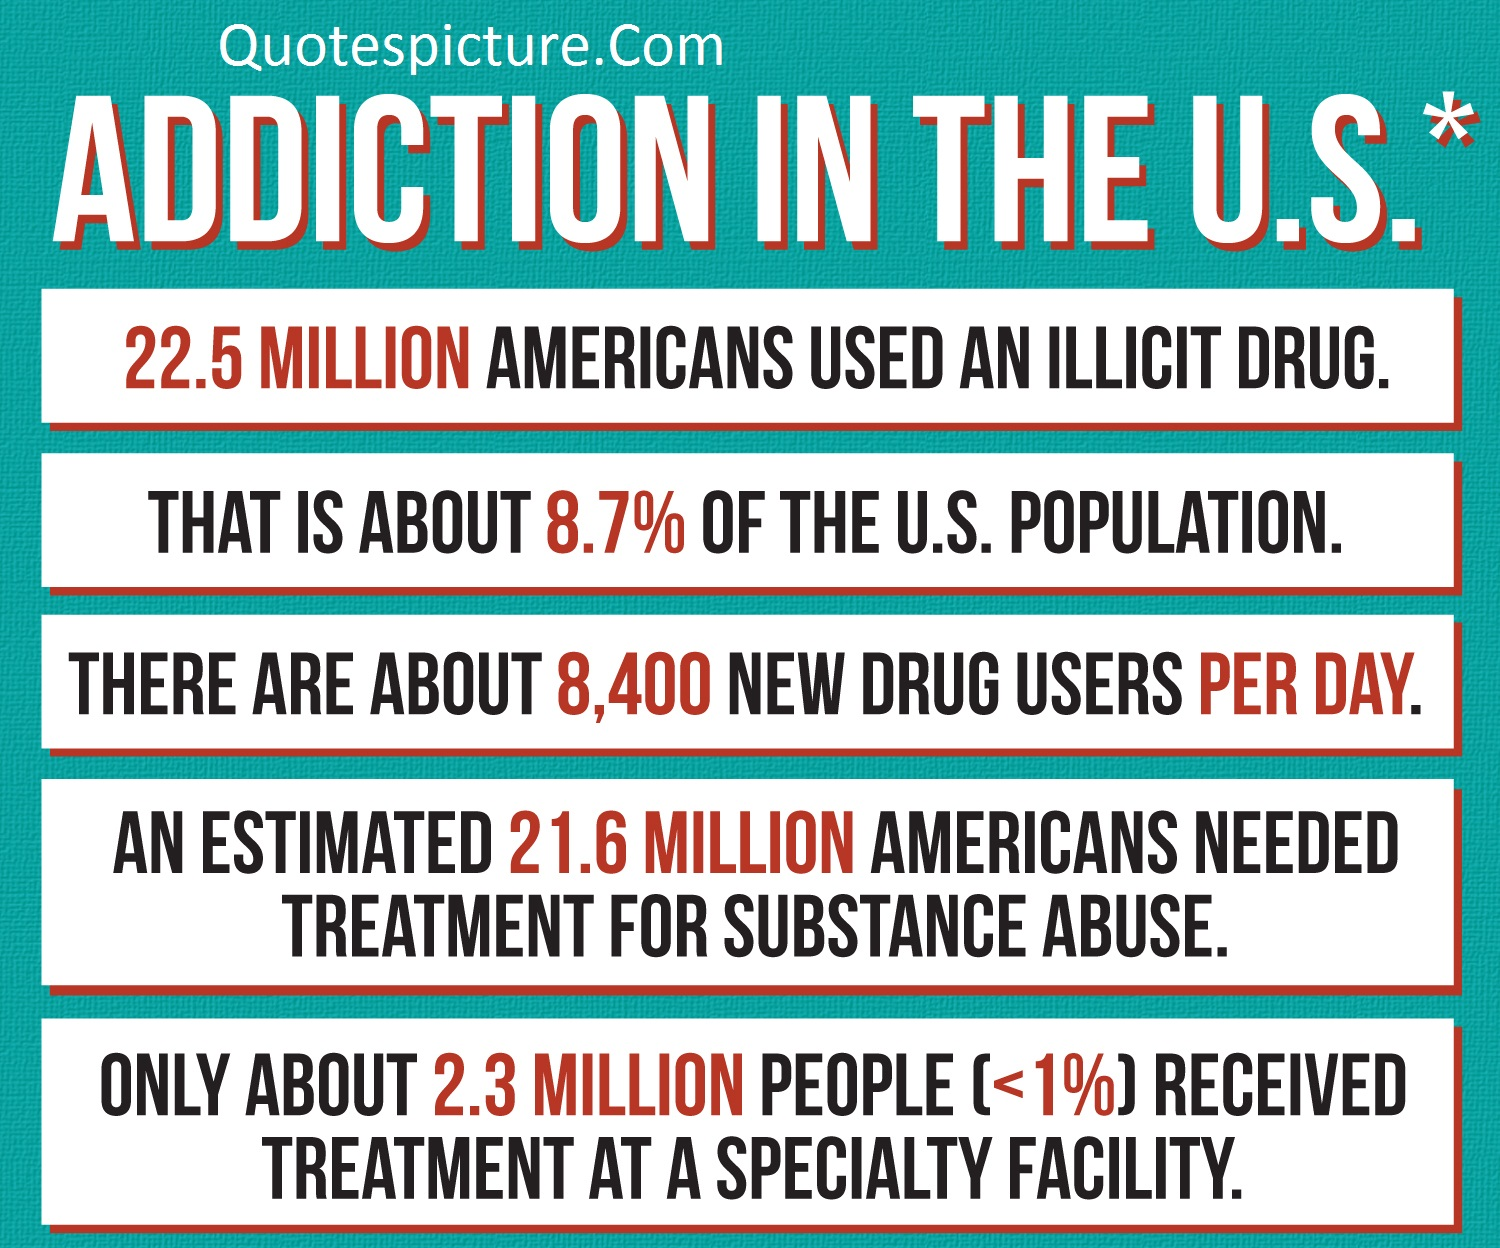 Addiction Quotes - Addiction In The U.S.